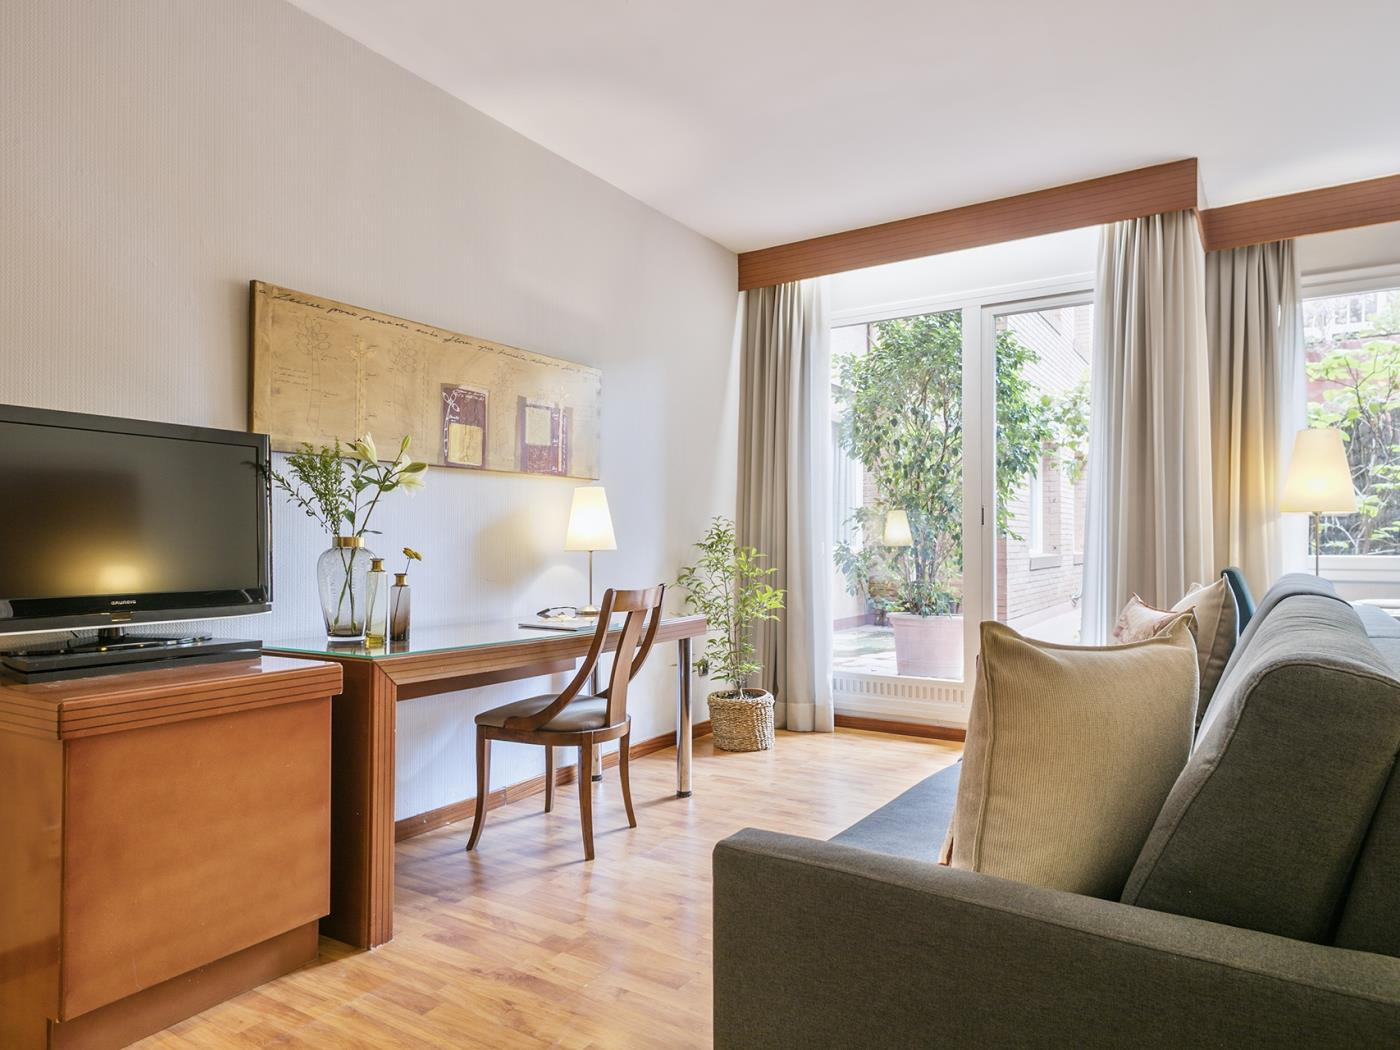 Elegant apartment for long-term rentals in Sant Gervasi with optional parking - My Space Barcelona Apartments